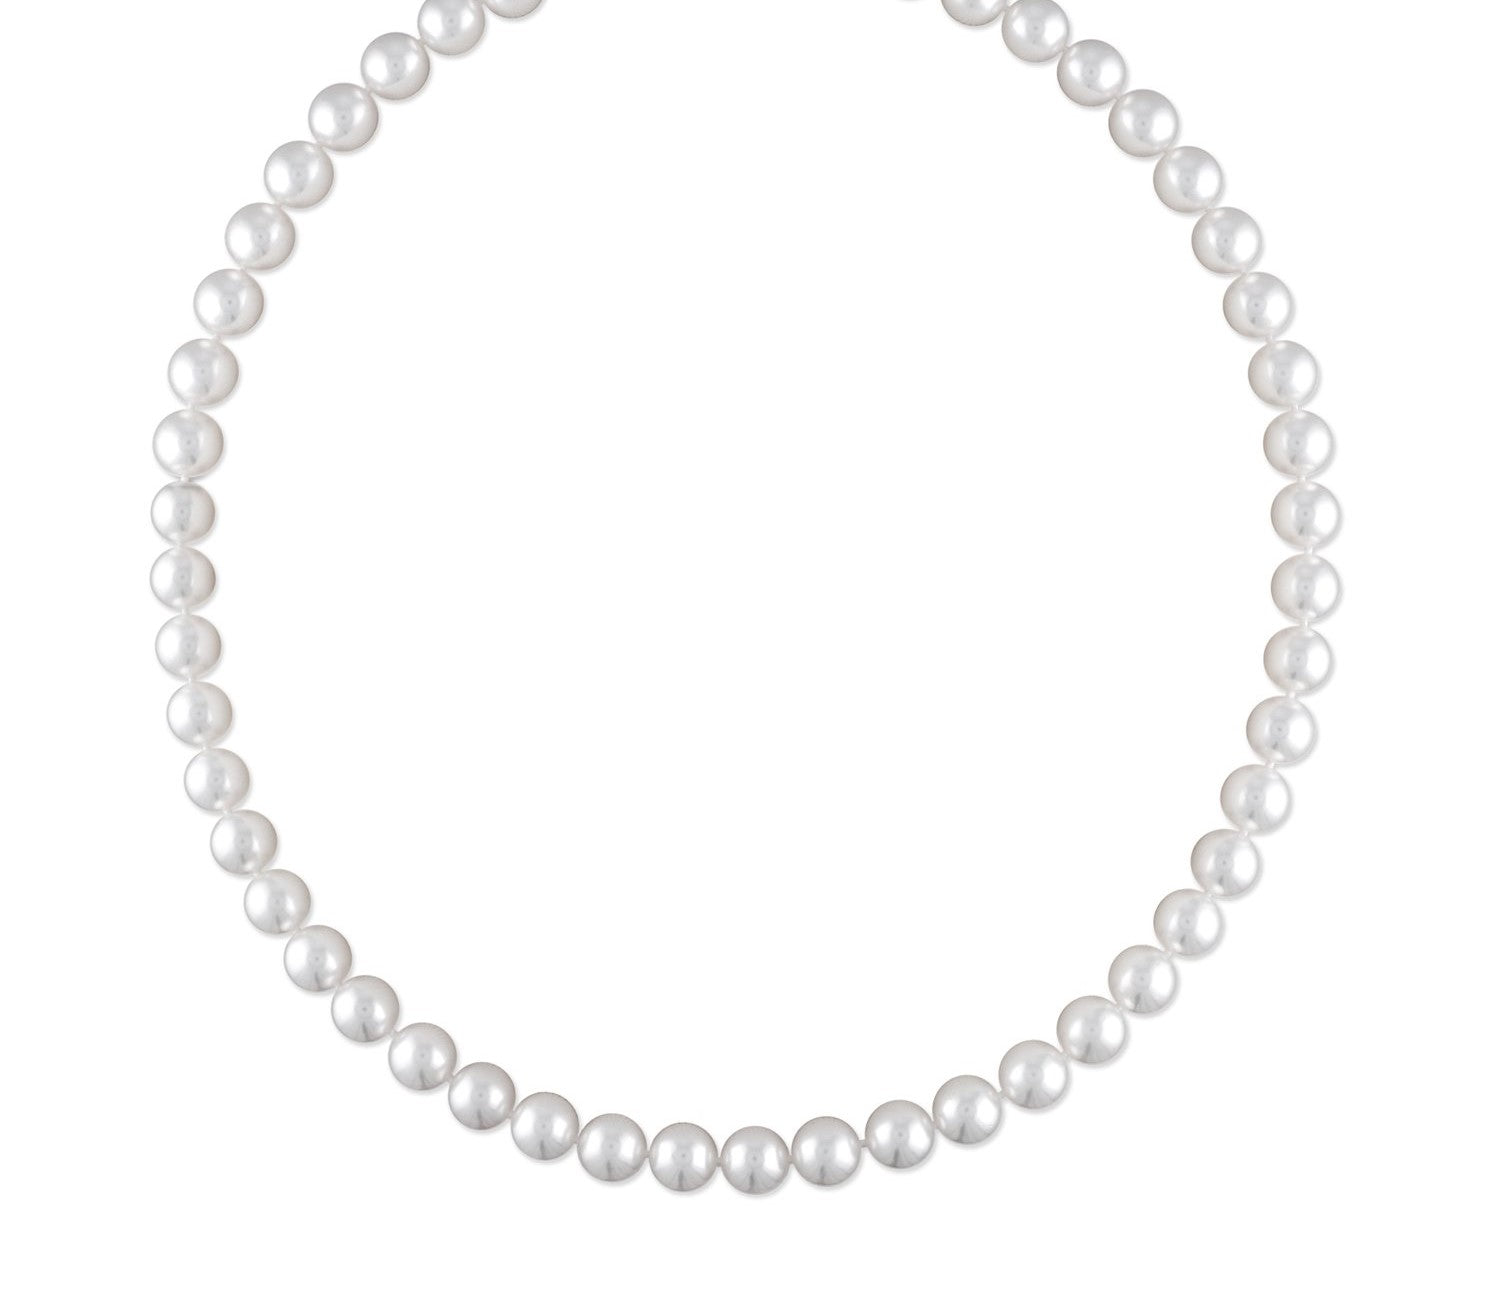 7.5-8mm Akoya Cultured Pearl Necklace